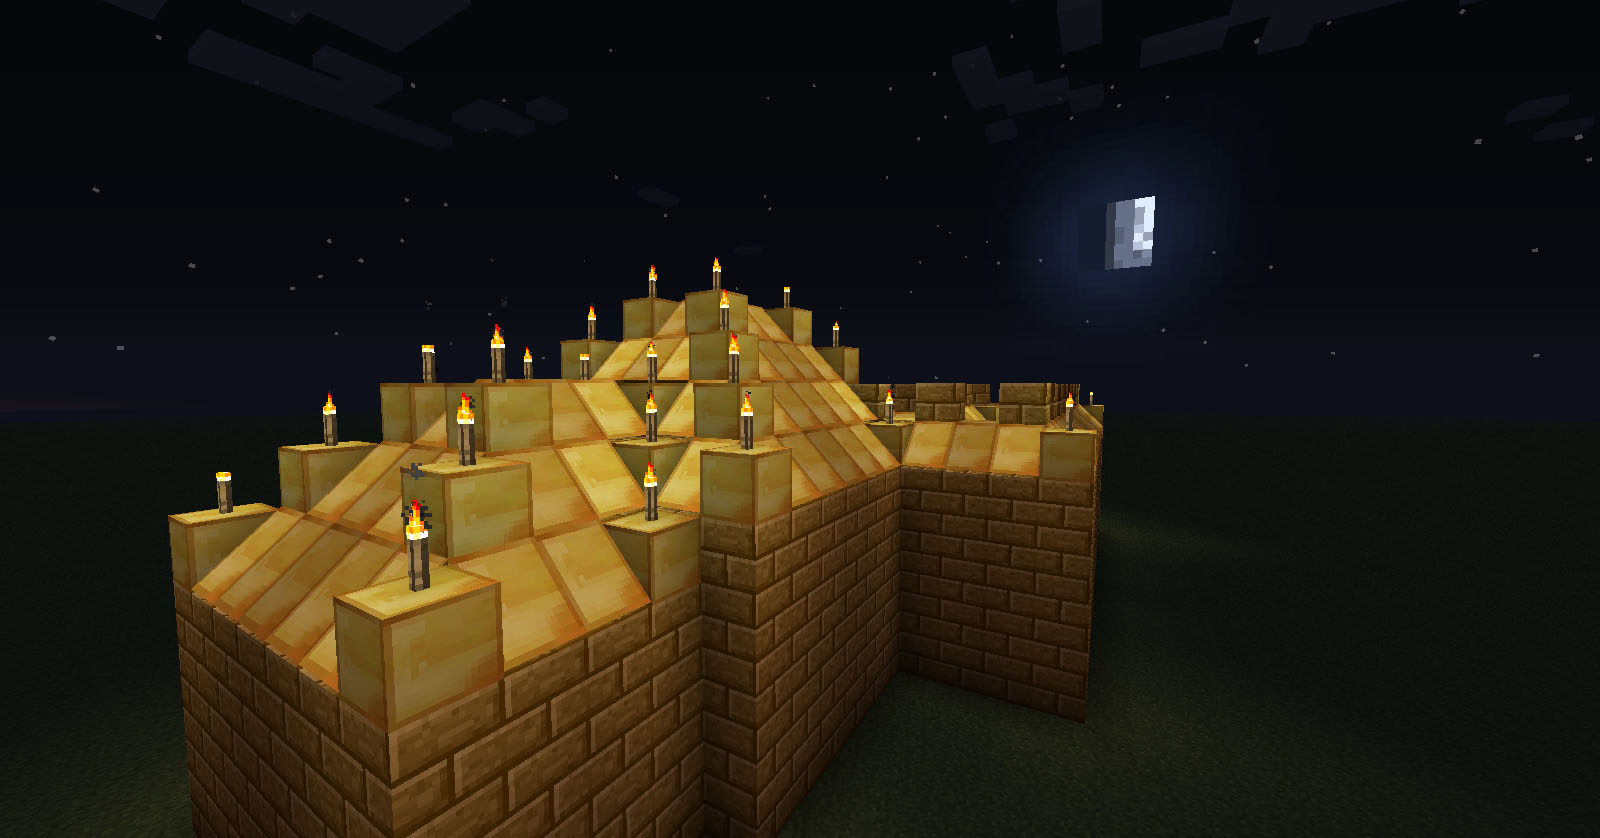 http://minecraft-forum.net/wp-content/uploads/2013/07/fd501__Extrapolated-Ores-Mod-3.jpg